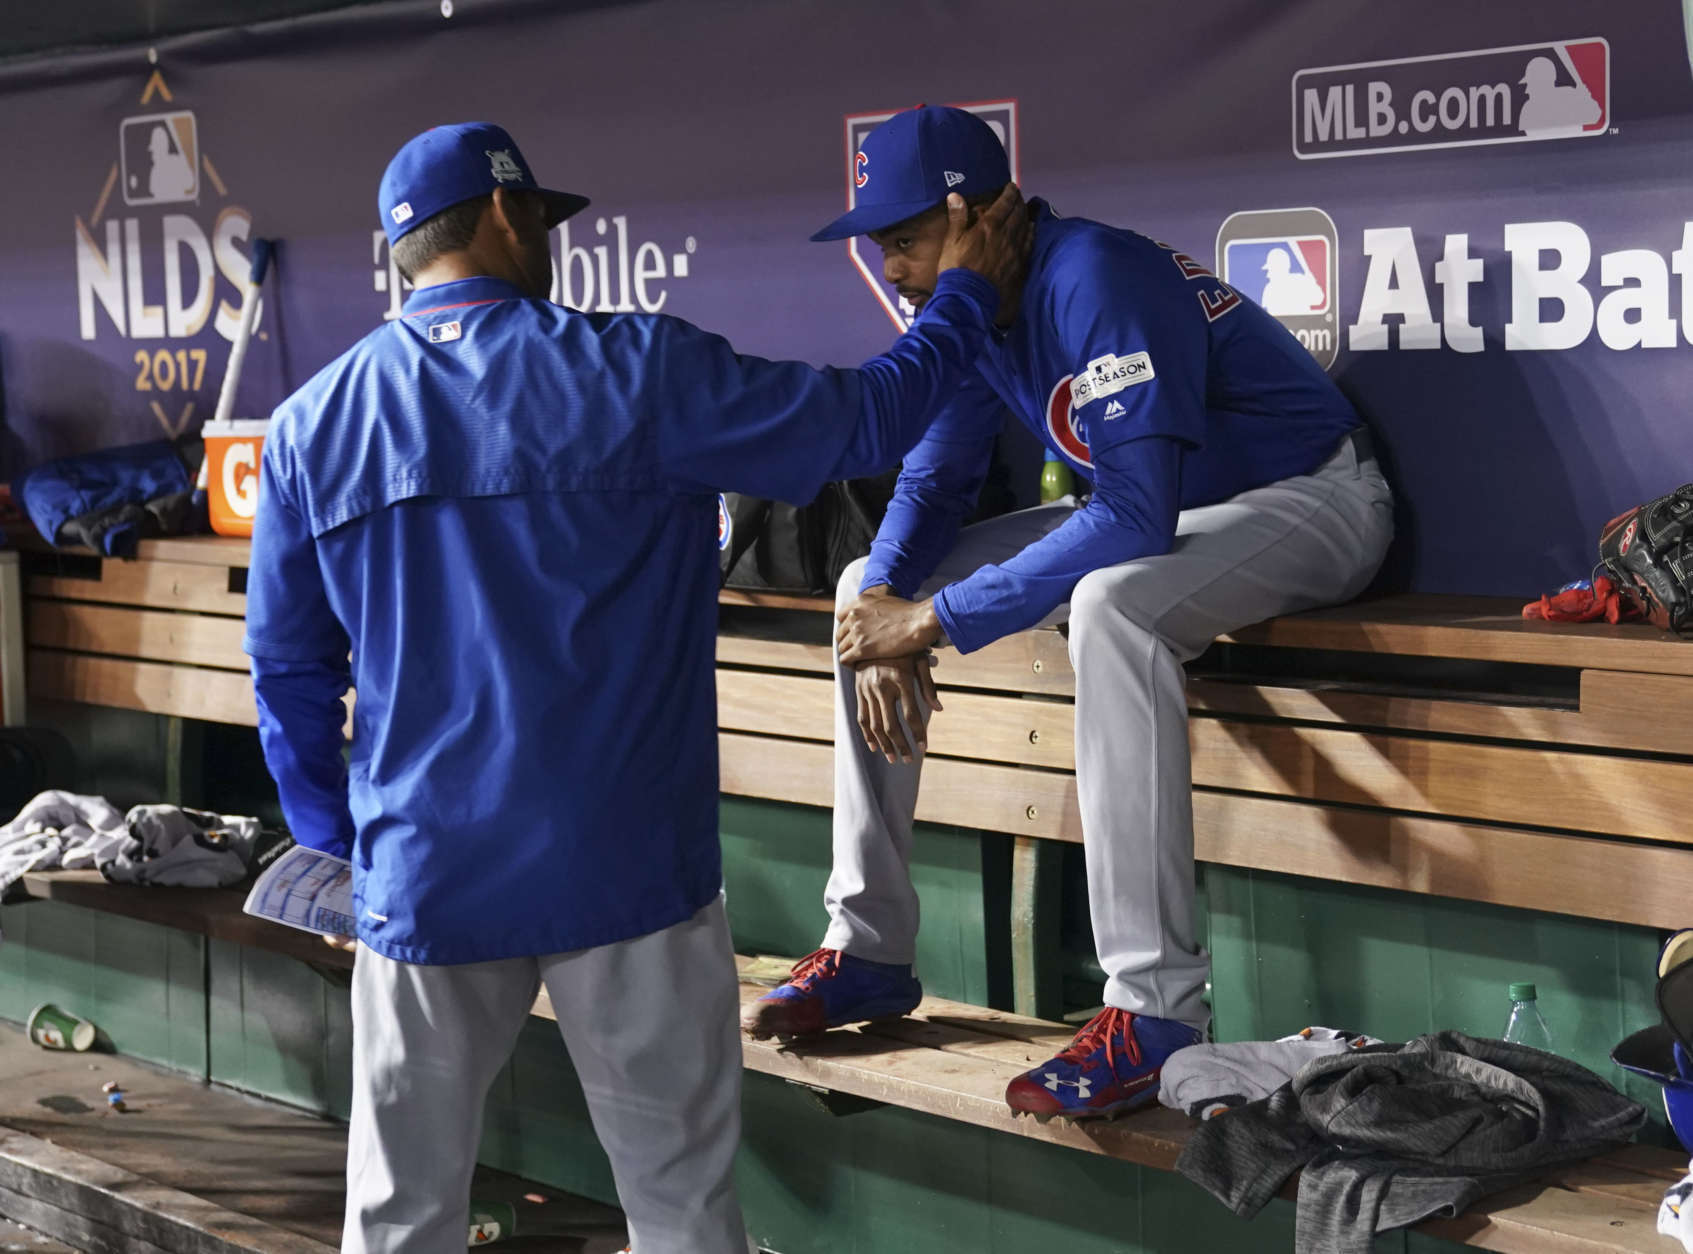 Chicago Cubs bench coach Dave Martinez, left, consoles Chicago Cubs relief pitcher Carl Edwards Jr., in the dugout during the seventh inning in Game 5 of baseball's National League Division Series against the Washington Nationals at Nationals Park, Thursday, Oct. 12, 2017, in Washington. (AP Photo/Pablo Martinez Monsivais)